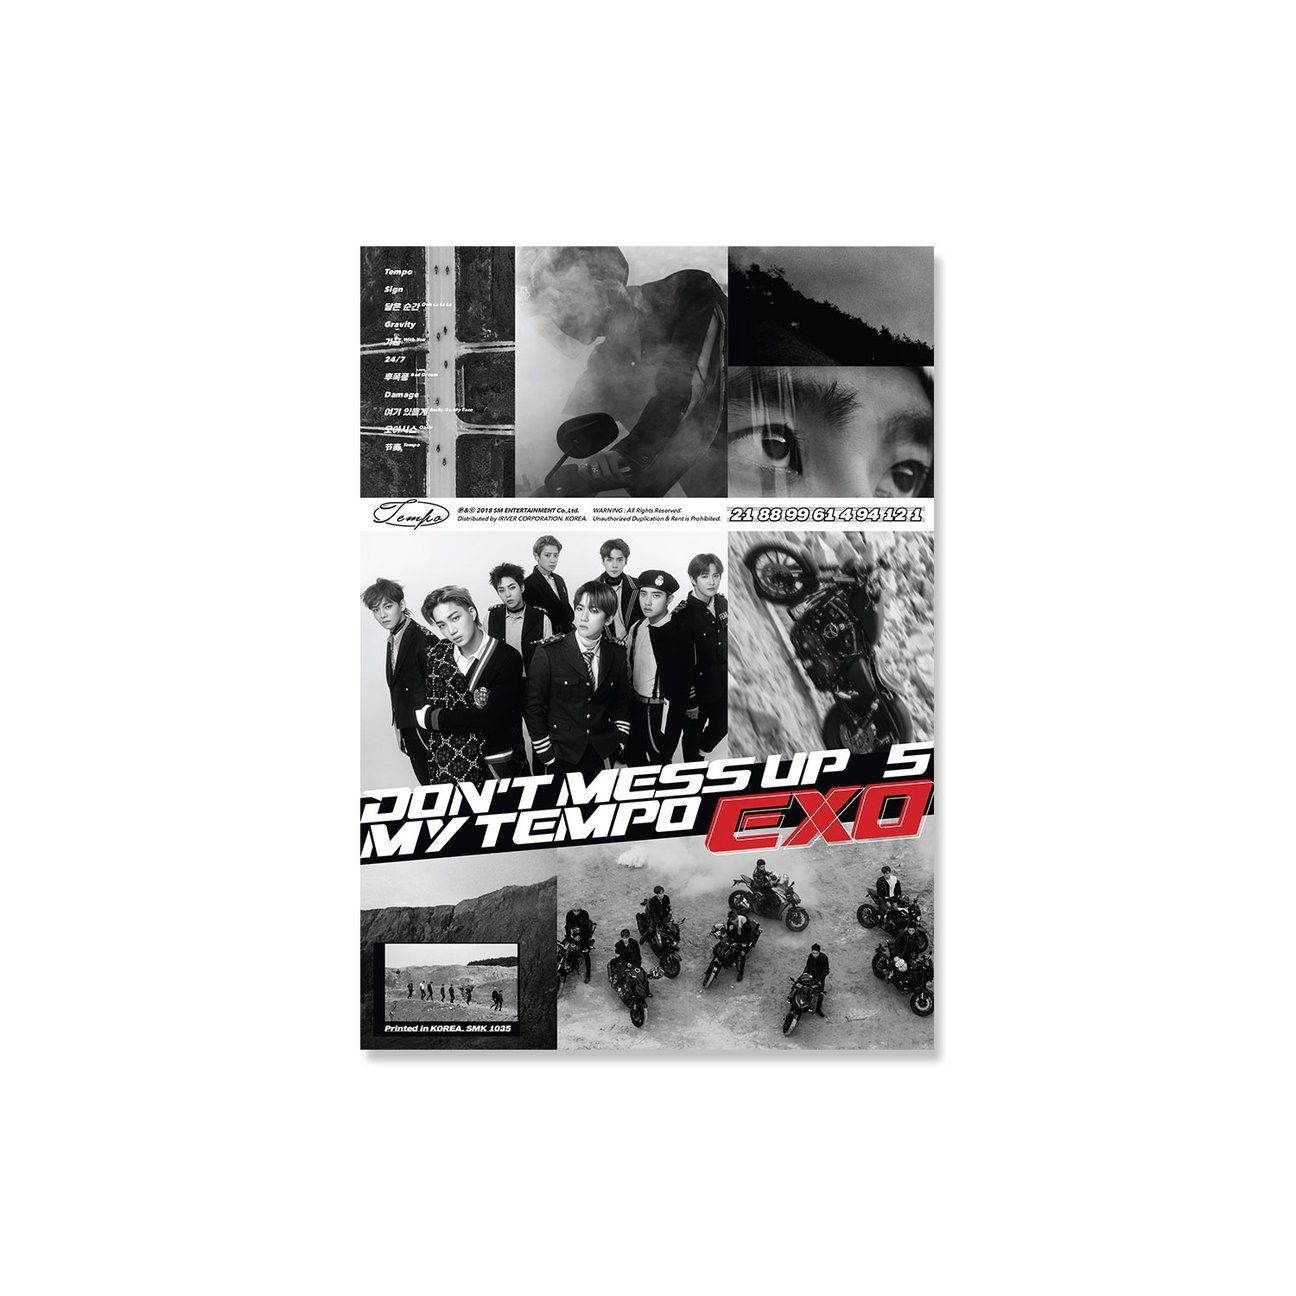 The 5th Full Length Studio Album Don T Mess Up My Tempo Allegro Version Is A 11 Track Multi Genre Compilation With A Rhythmical Powerful And Energetic Dan